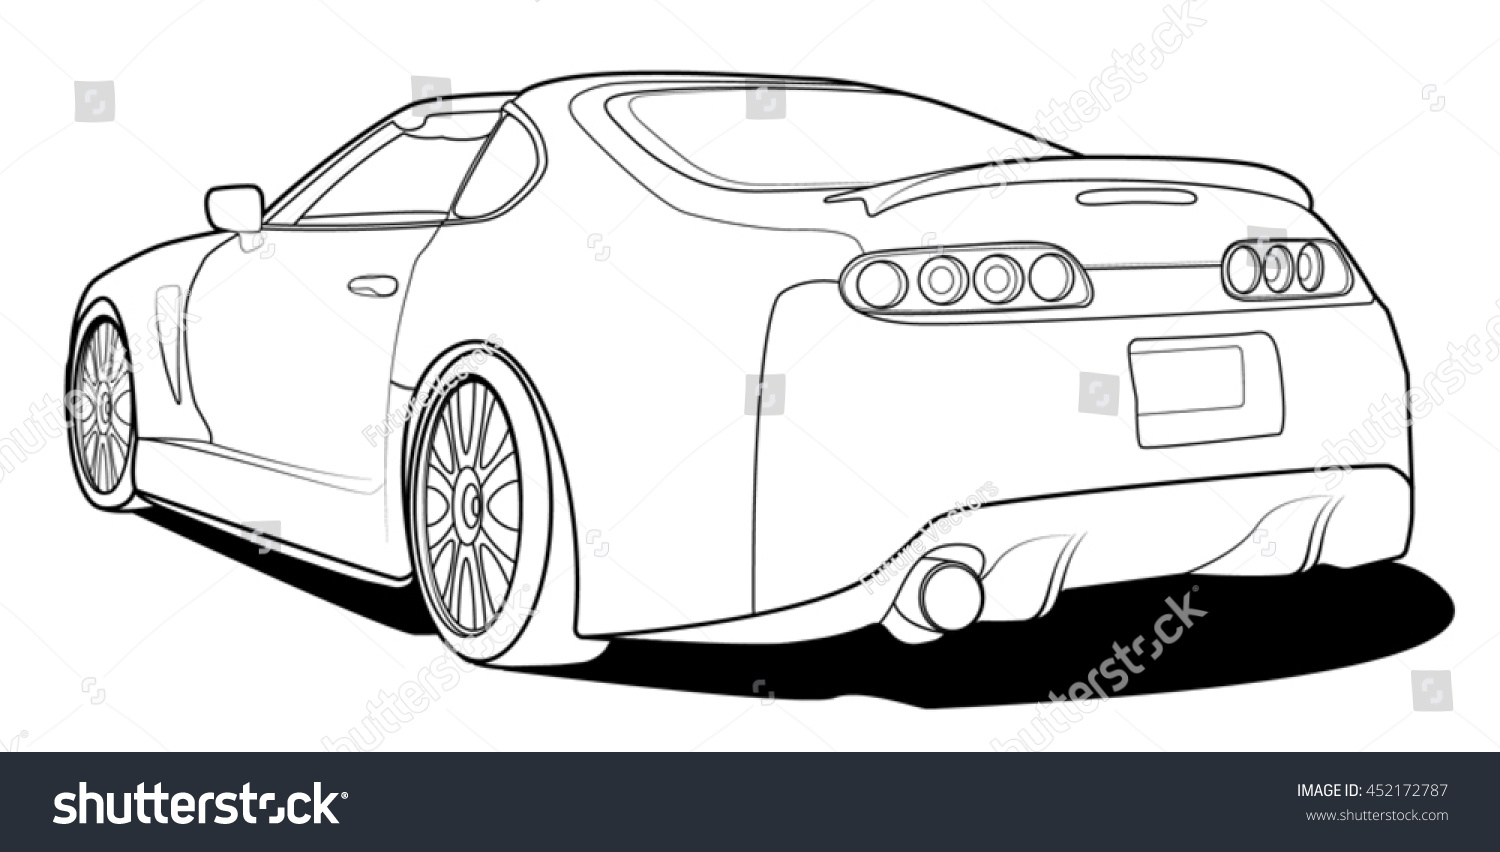 1500x852 Sports Car Drawing Outline How To Draw A Race Car Easy For Kids